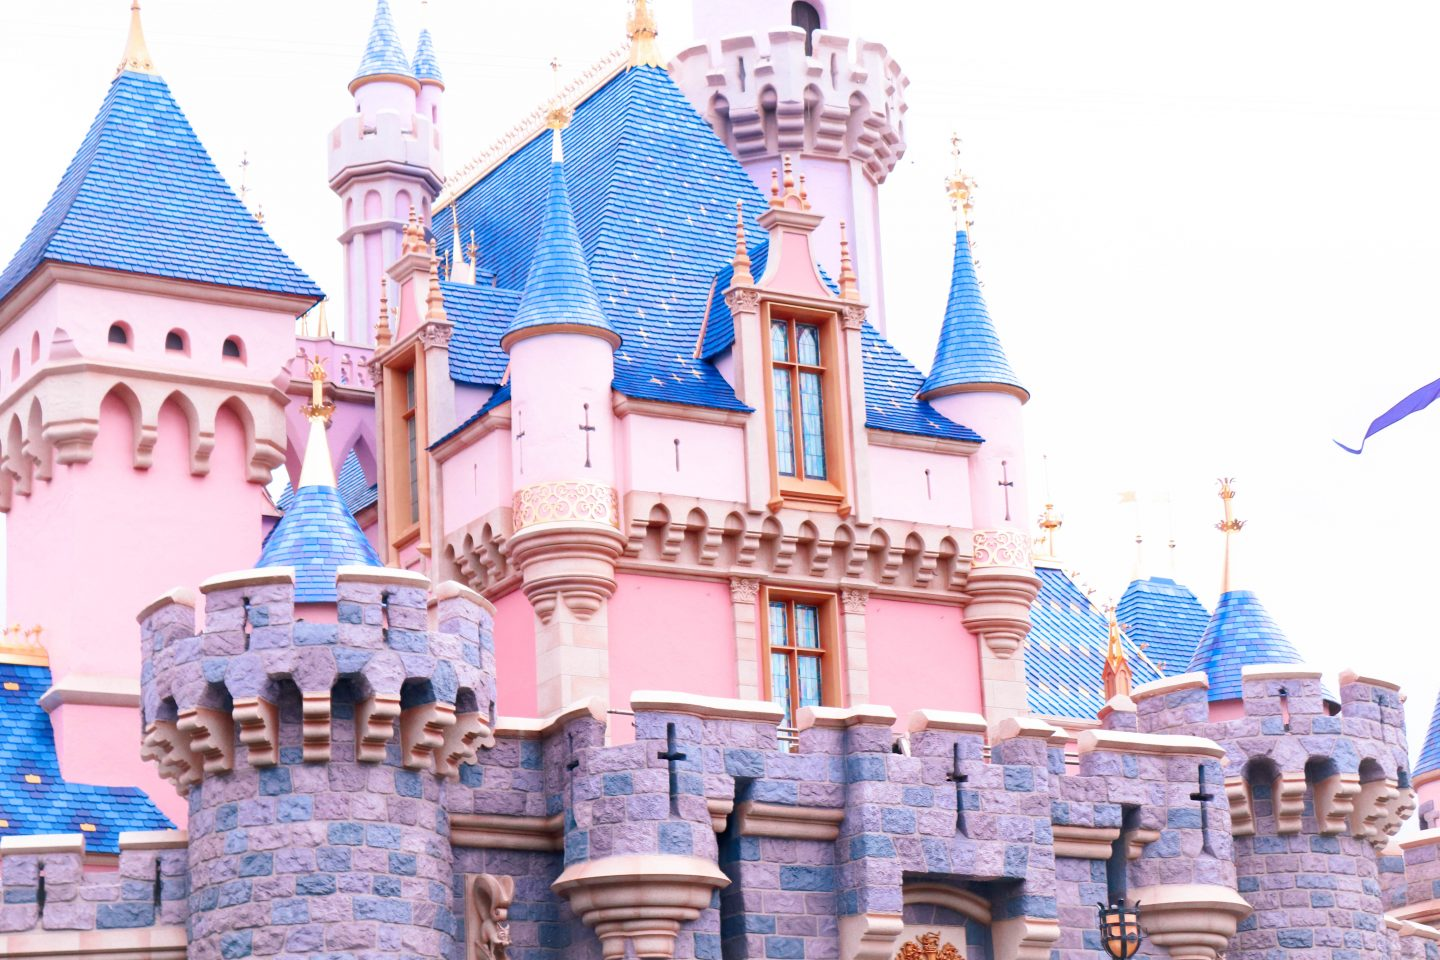 how to plan a disneyland vacation, disneyland family trip, southern california trip, disnyeland for beginners, disneyland trip, disneyland vacation, basics of disneyland